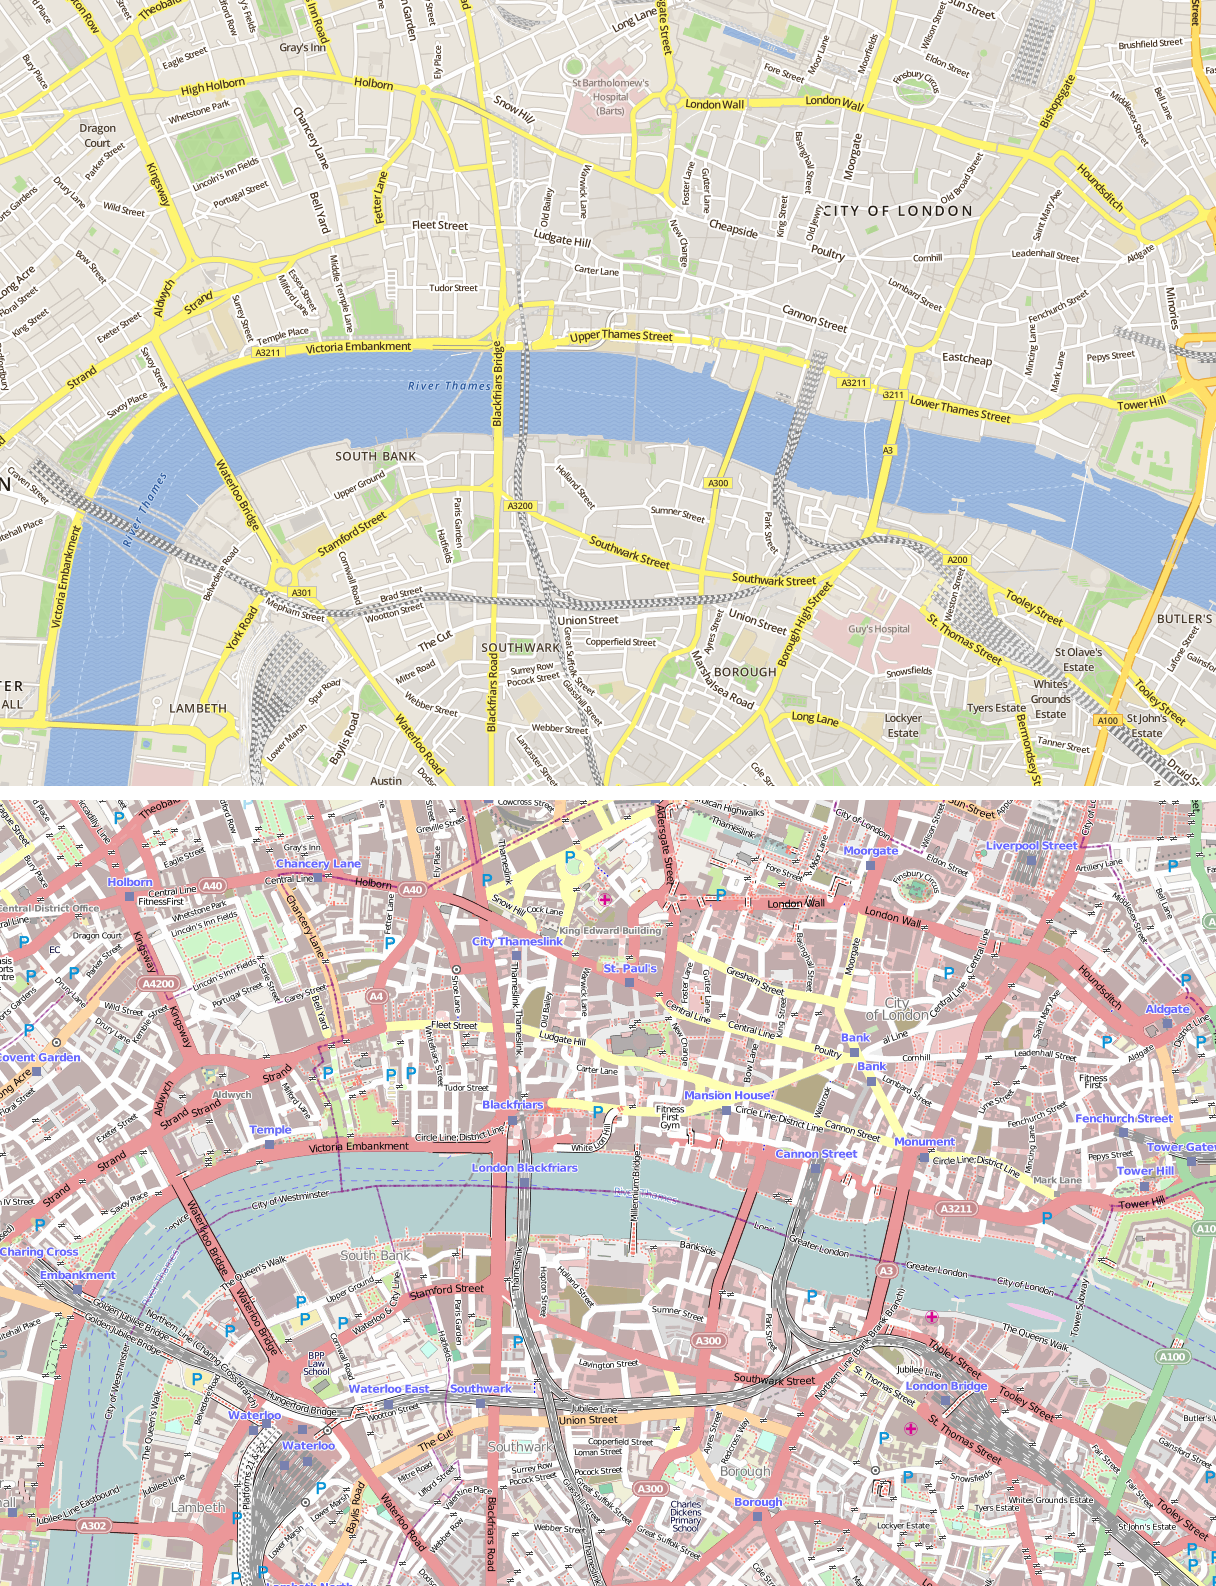 Comparison of Skobbler (top) and Mapnik (bottom) map styles (click to enlarge).